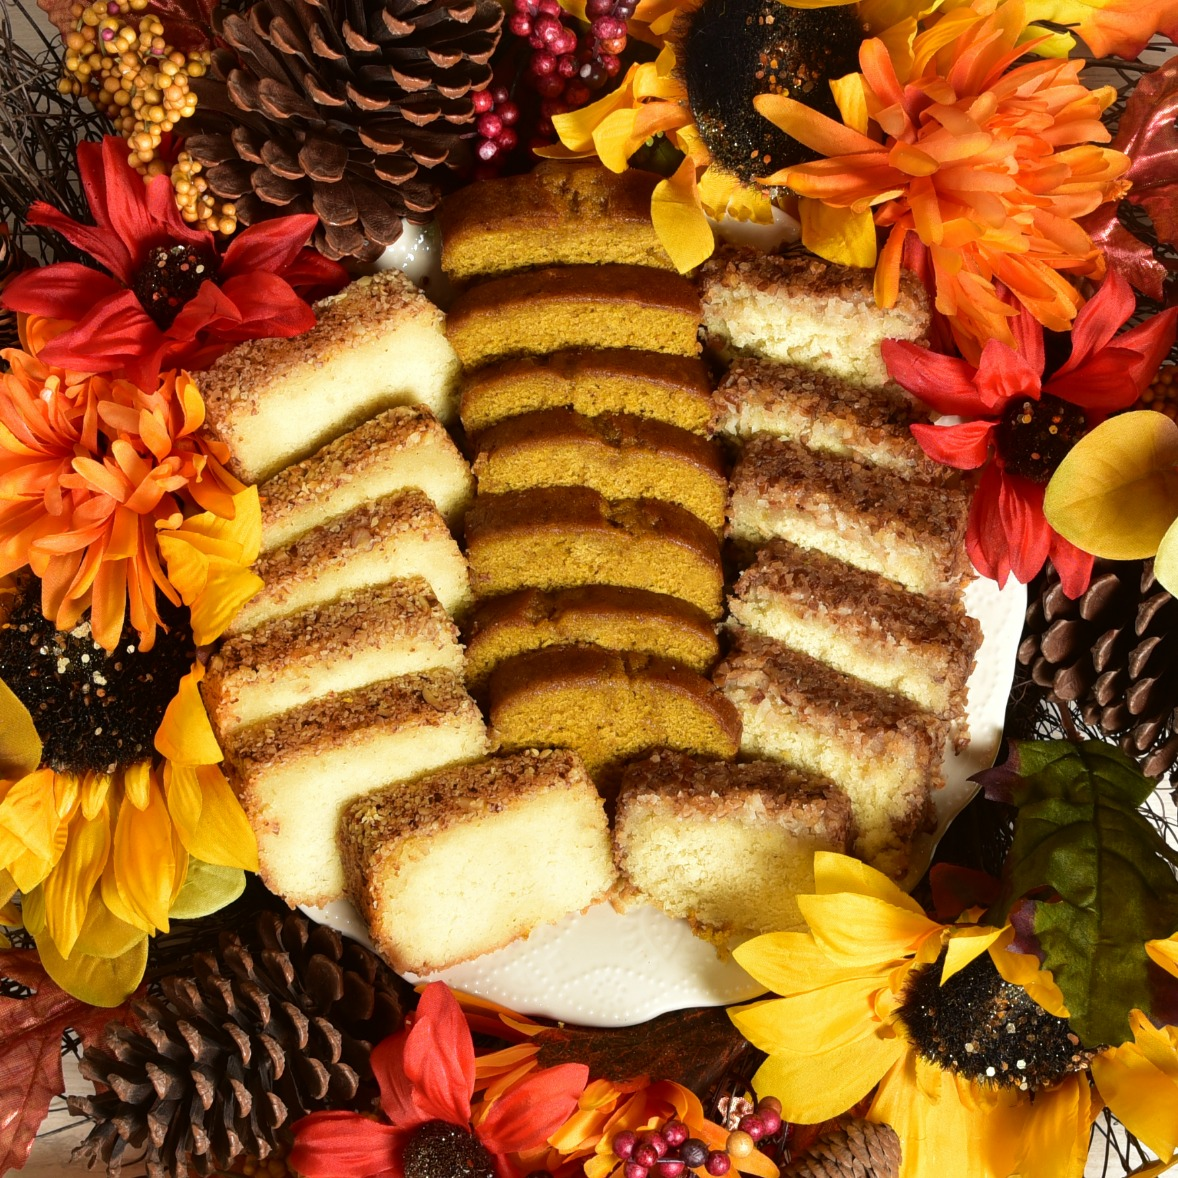 Thanksgiving-Cake-Collection-2-Square.jpg